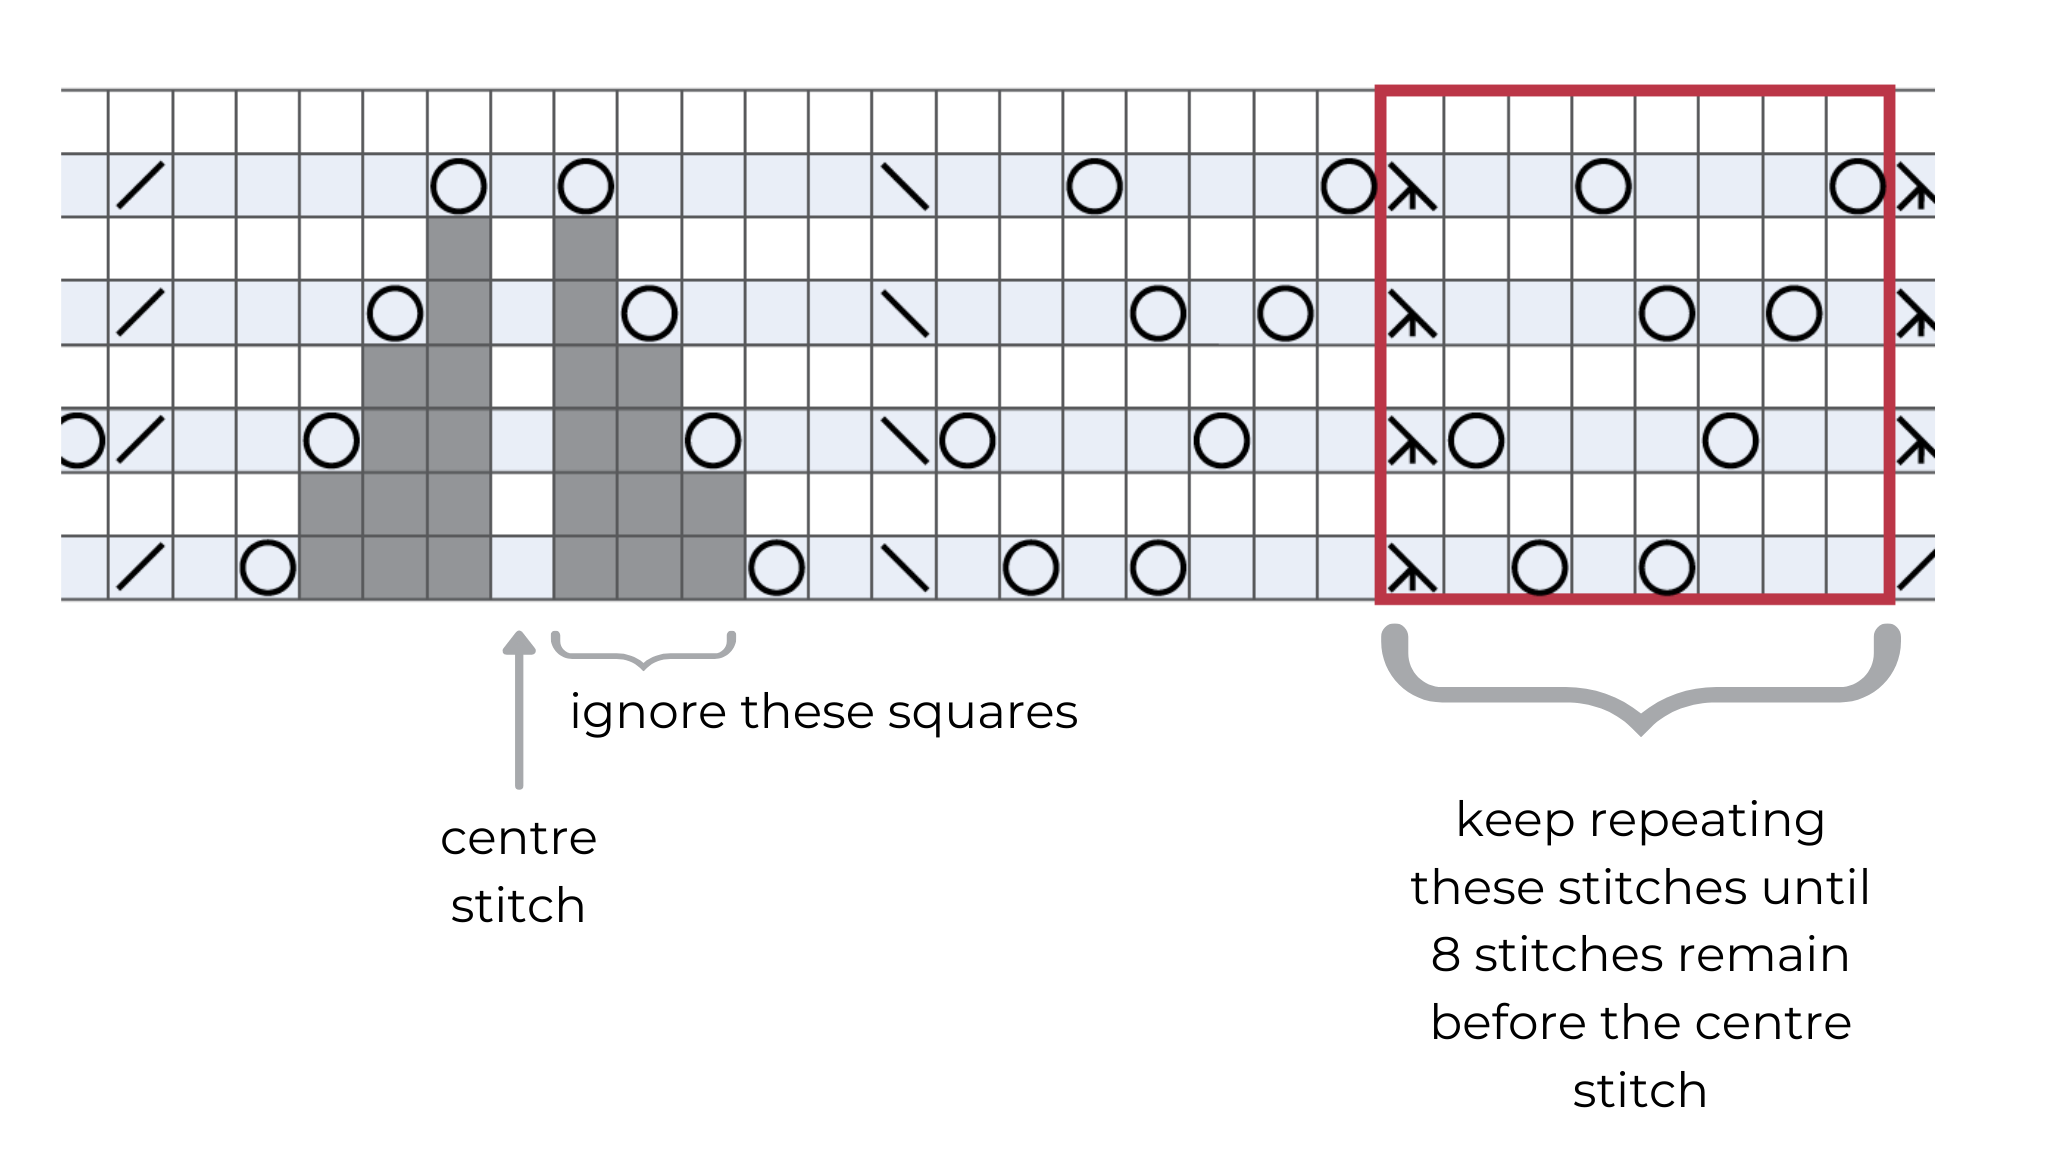 Working pattern repeats - repeat the stitches within the red box until 8 stitches remain before the centre stitch.